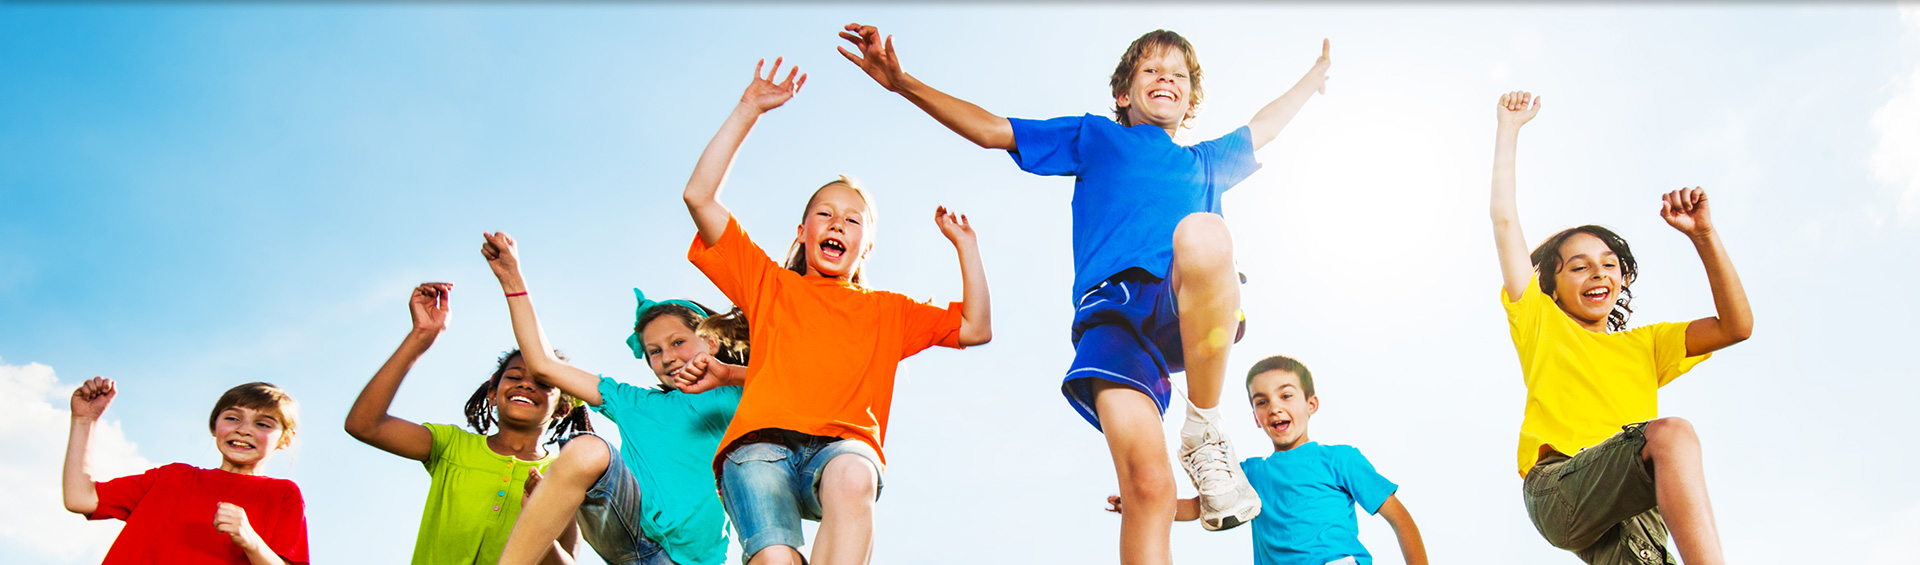 Banner Image of kids